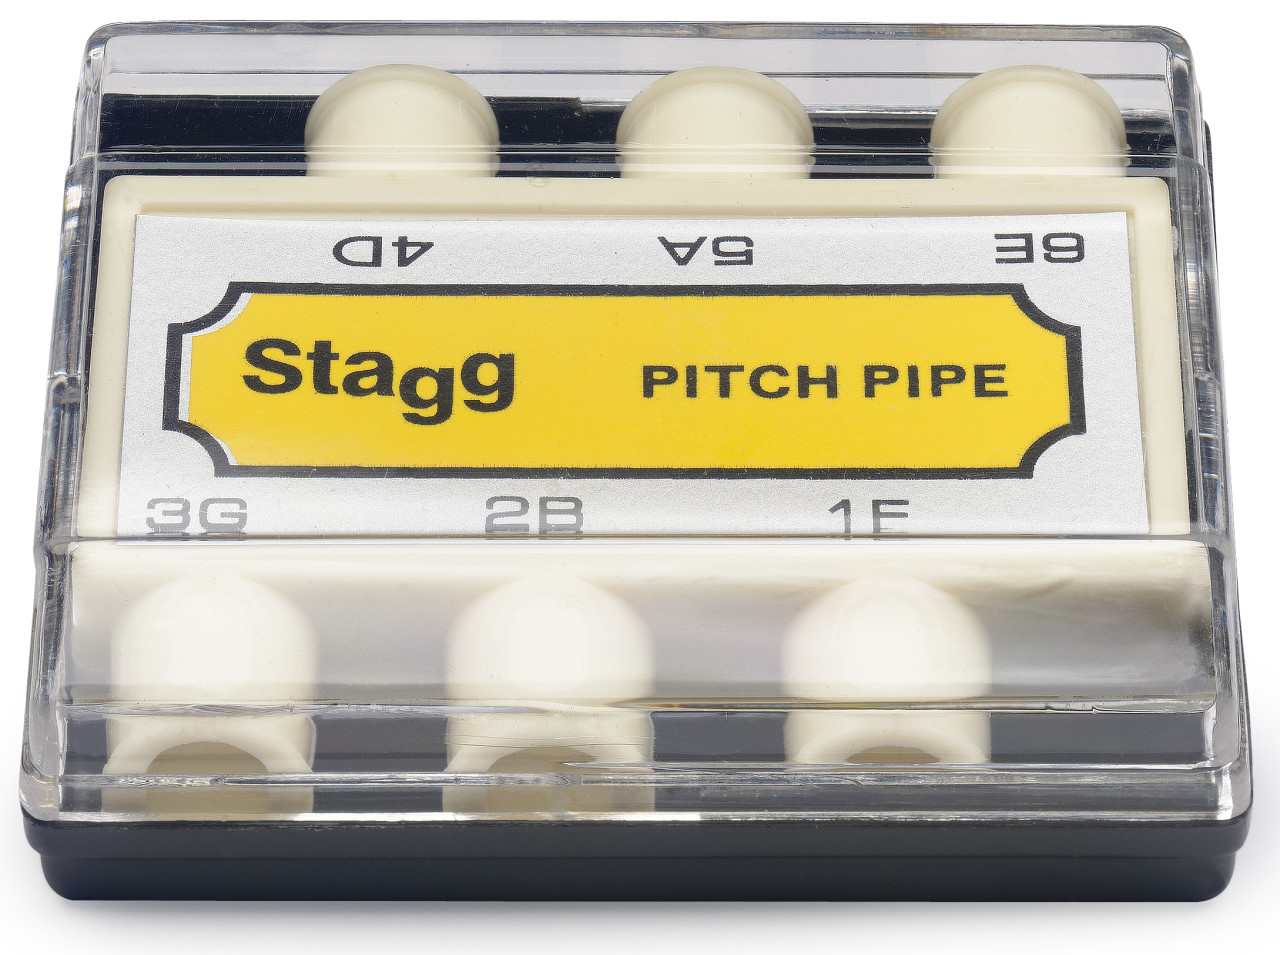 Guitar pitch pipe